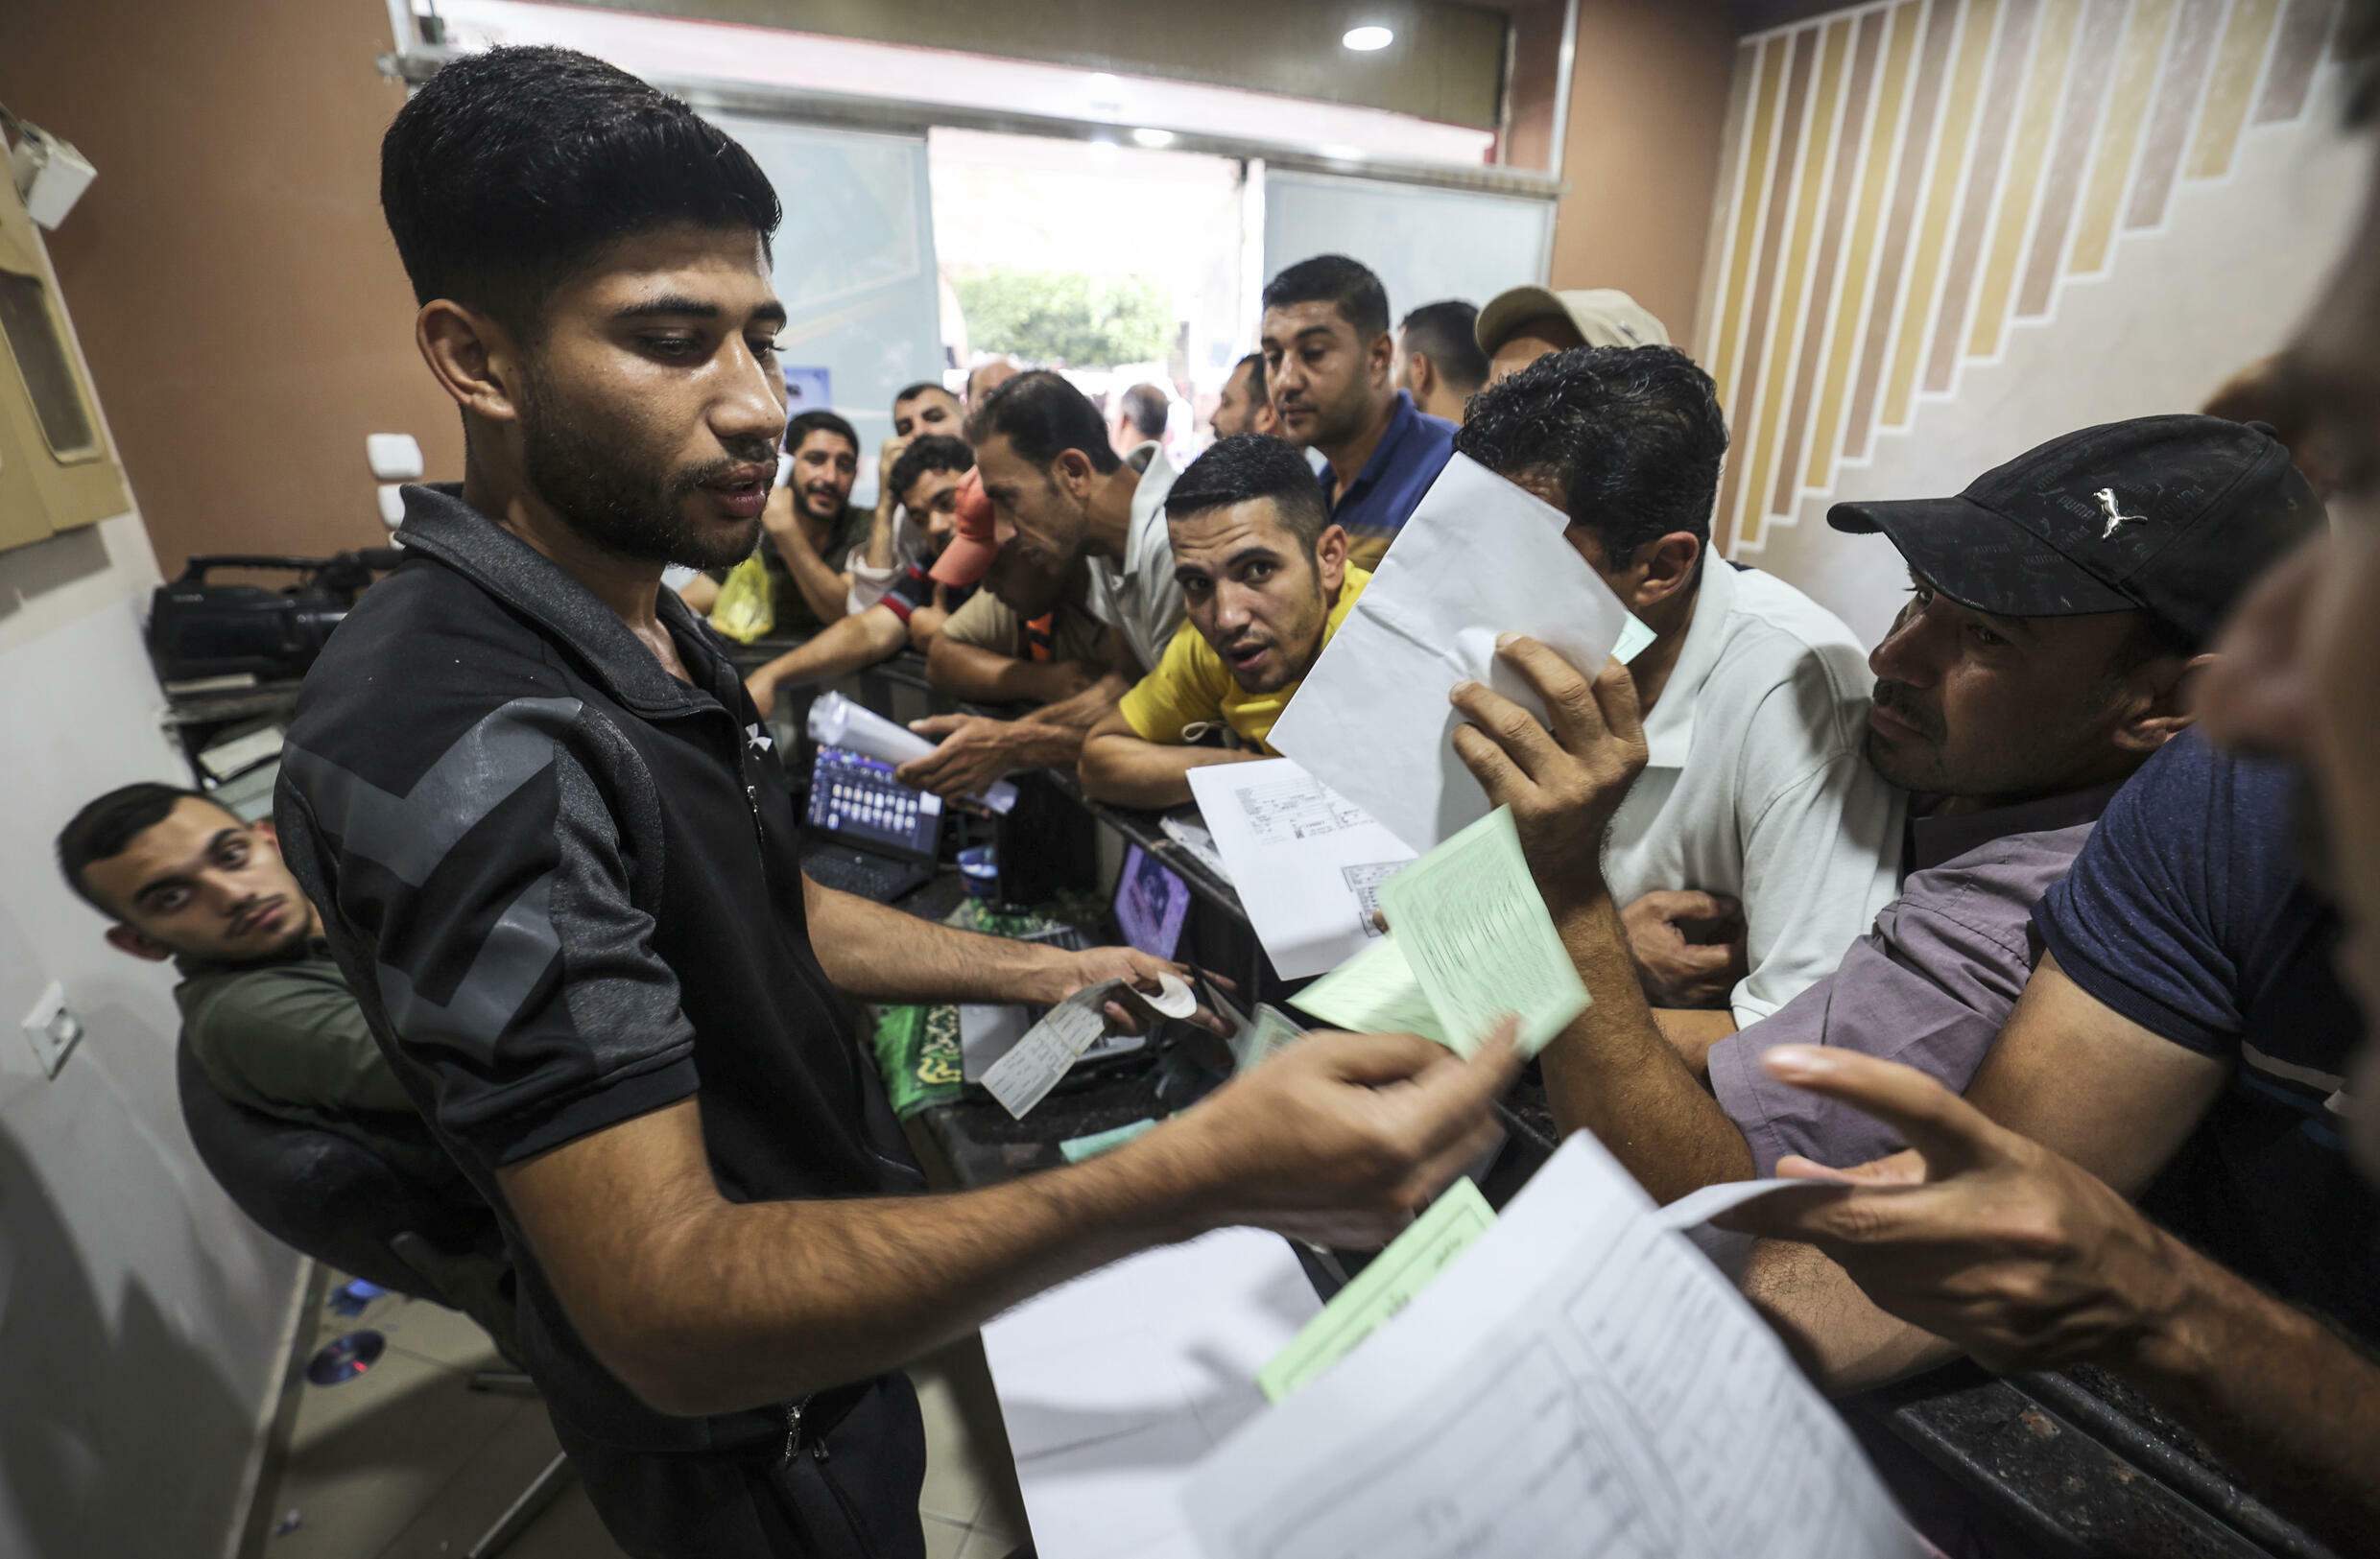 Palestinian men gather to apply for work permits in Israel, at Jabalia refugee camp in the northern Gaza Strip